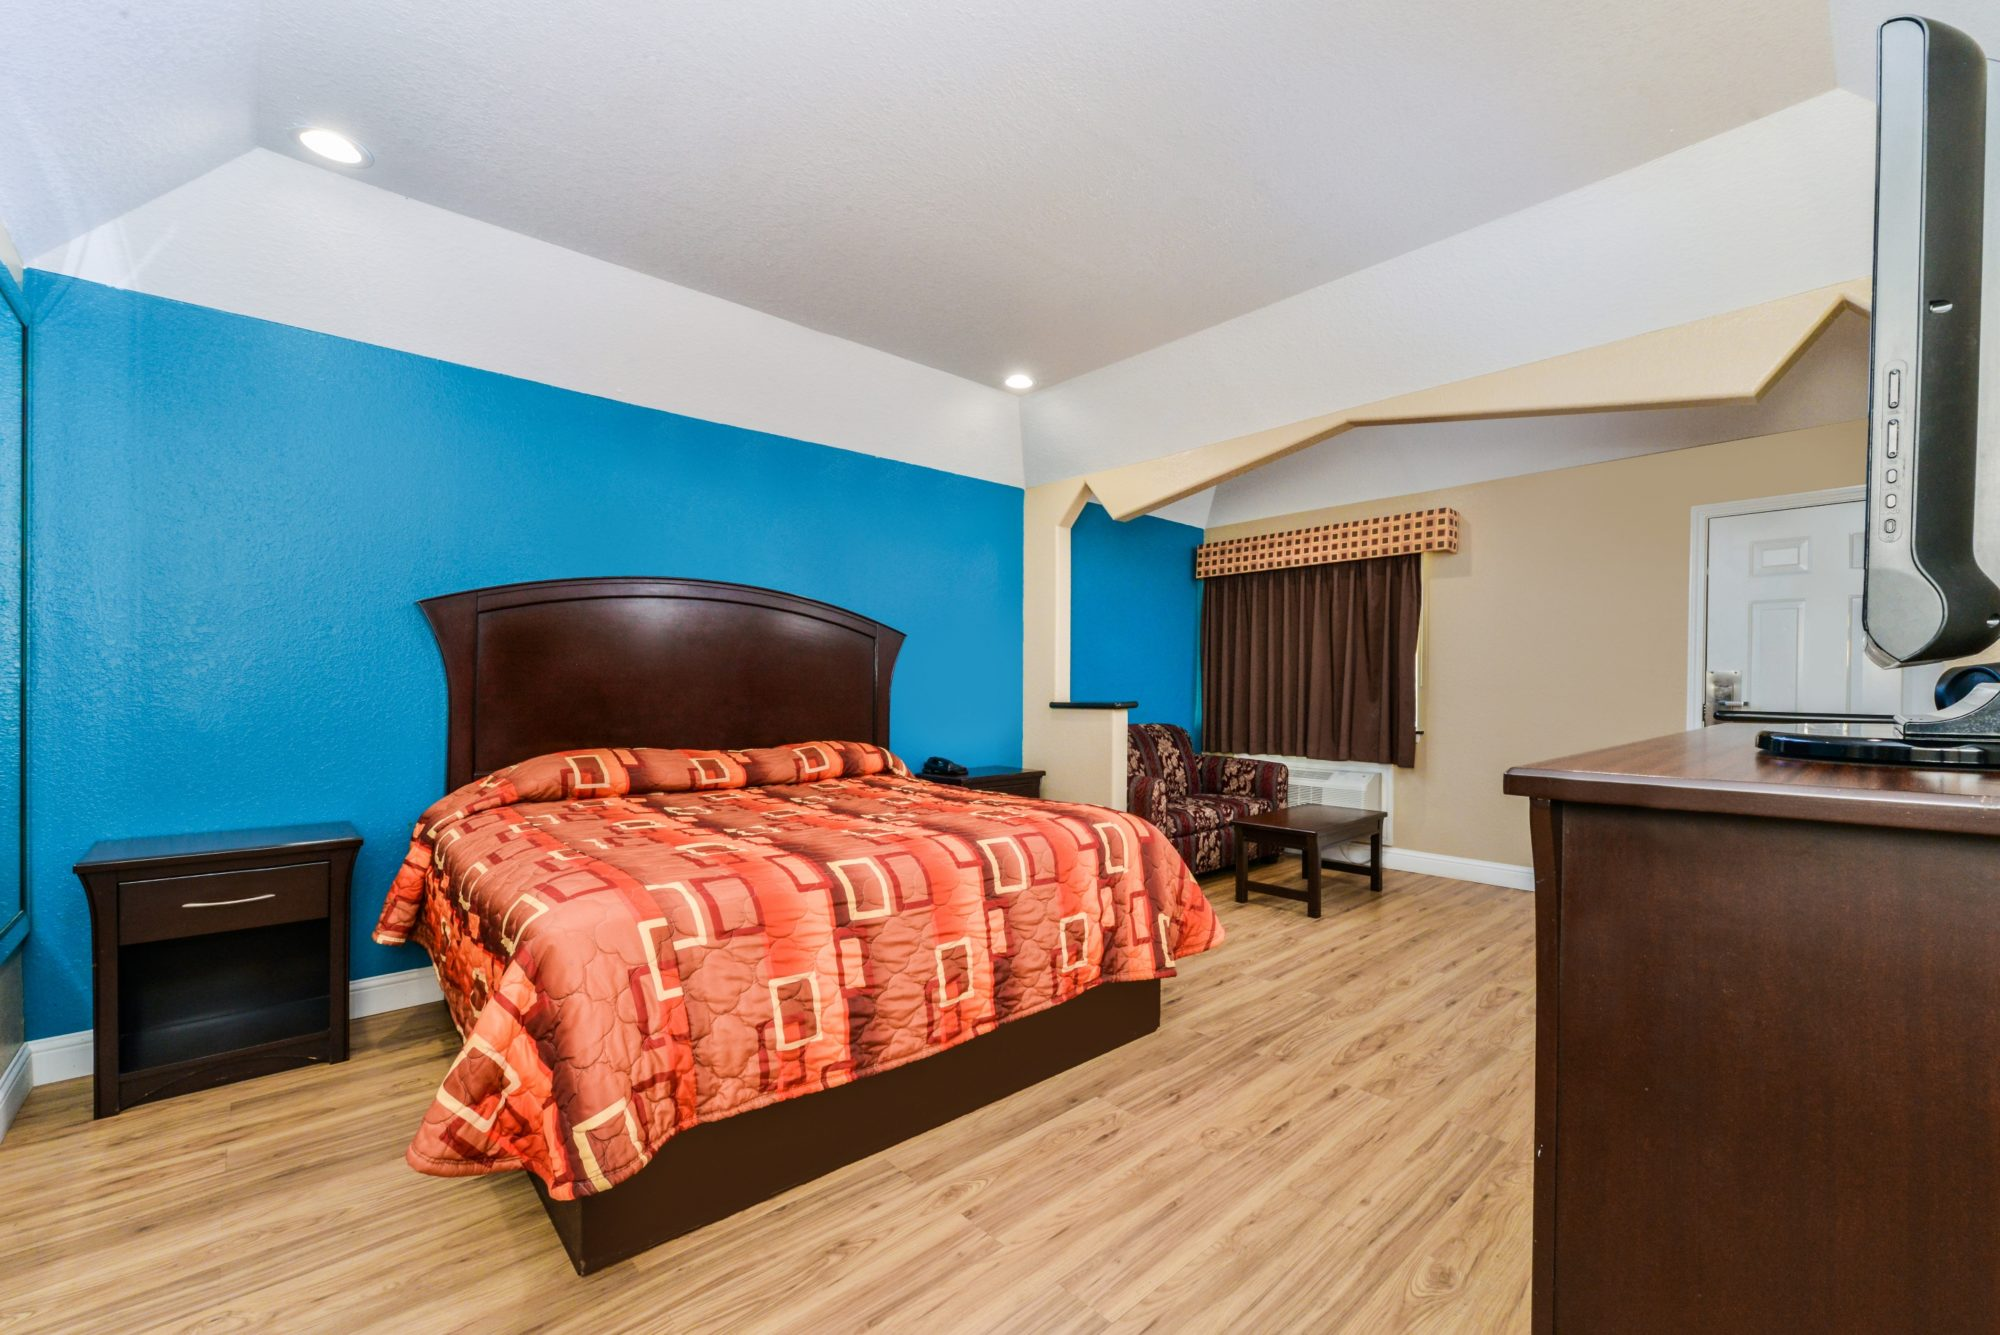 king bed, night stands with telephone, sofa, coffee table, wooden unit with flat screen tv, laminate flooring